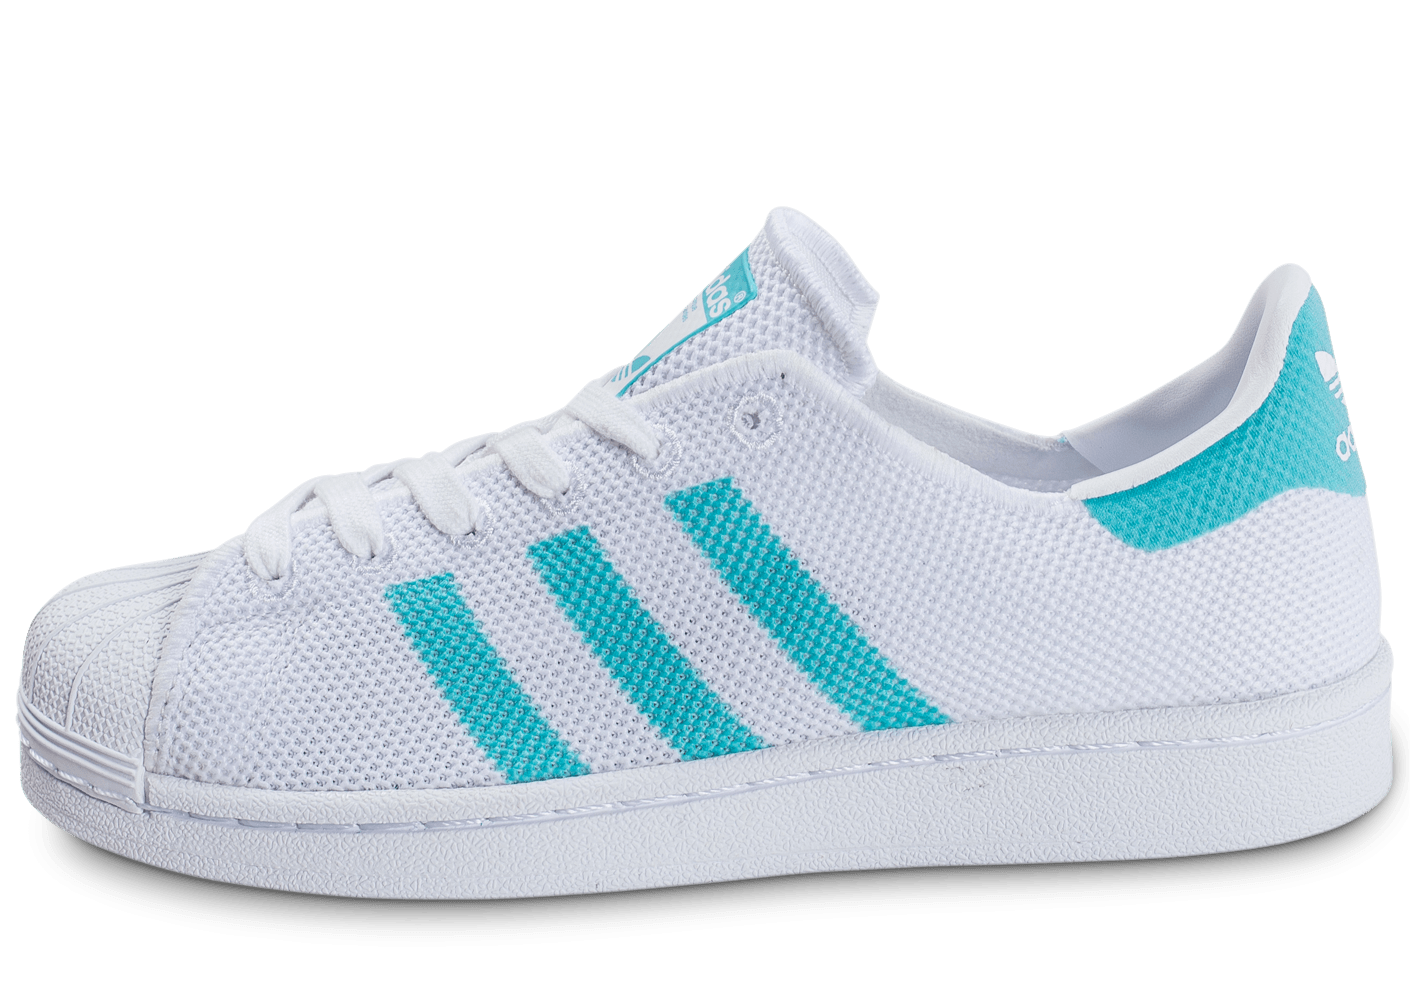 adidas Superstar Mesh blanche et turquoise